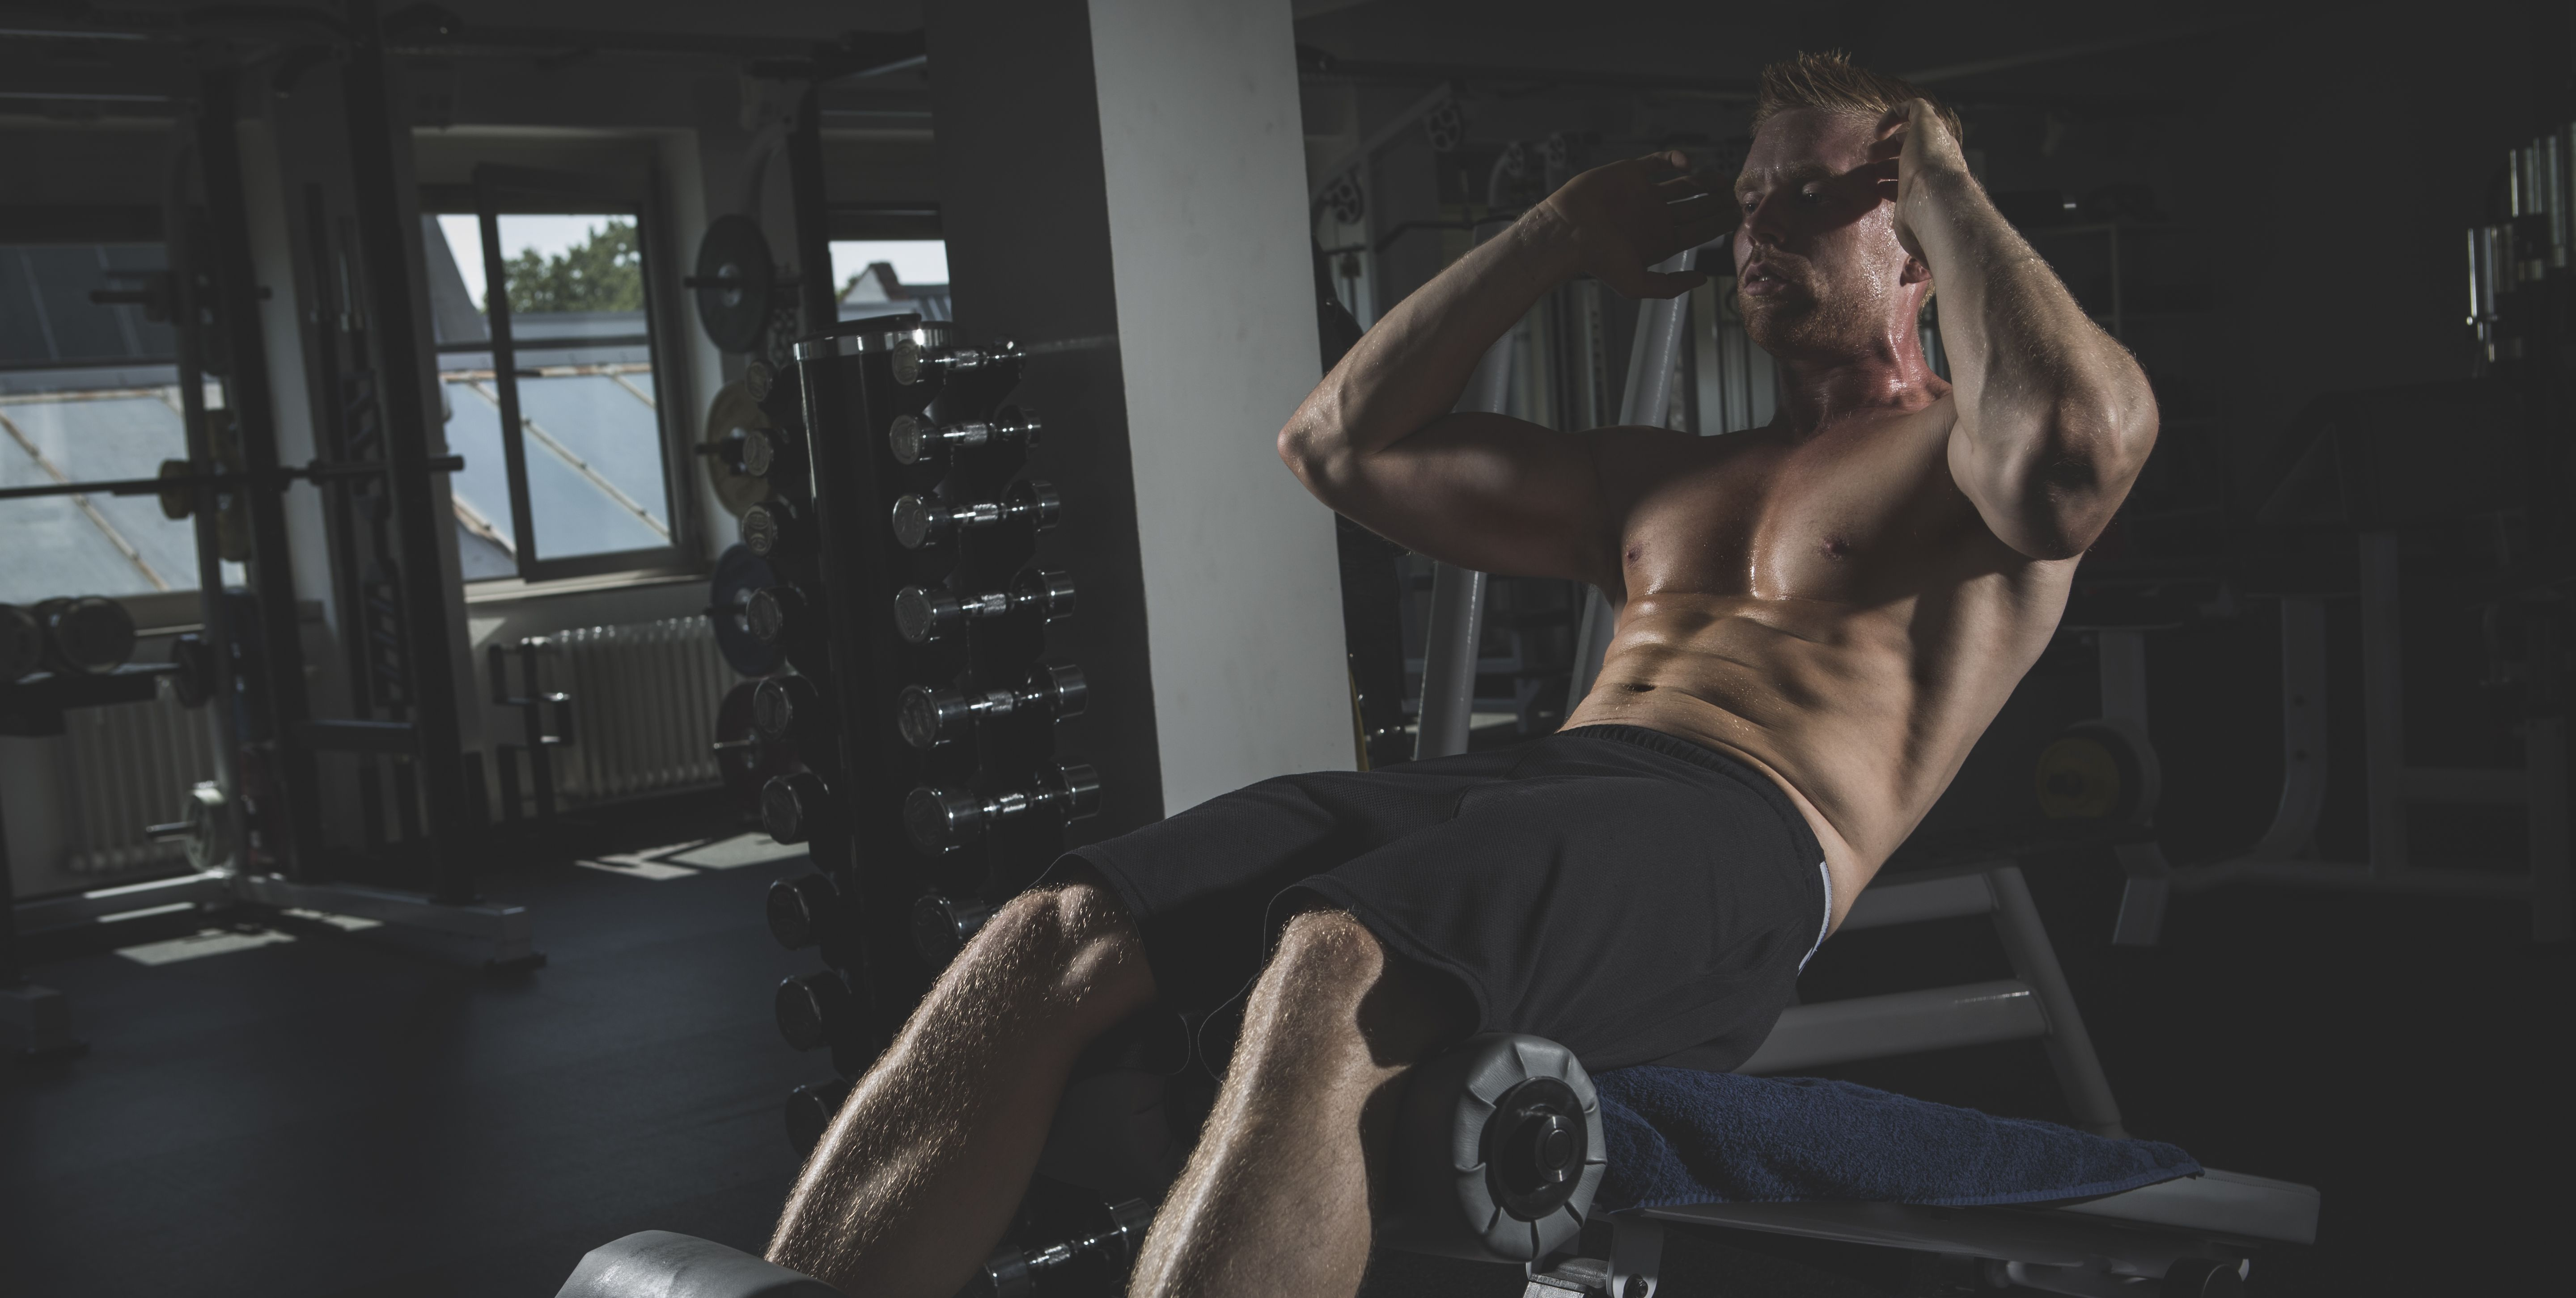 Physical athlete doing crunches